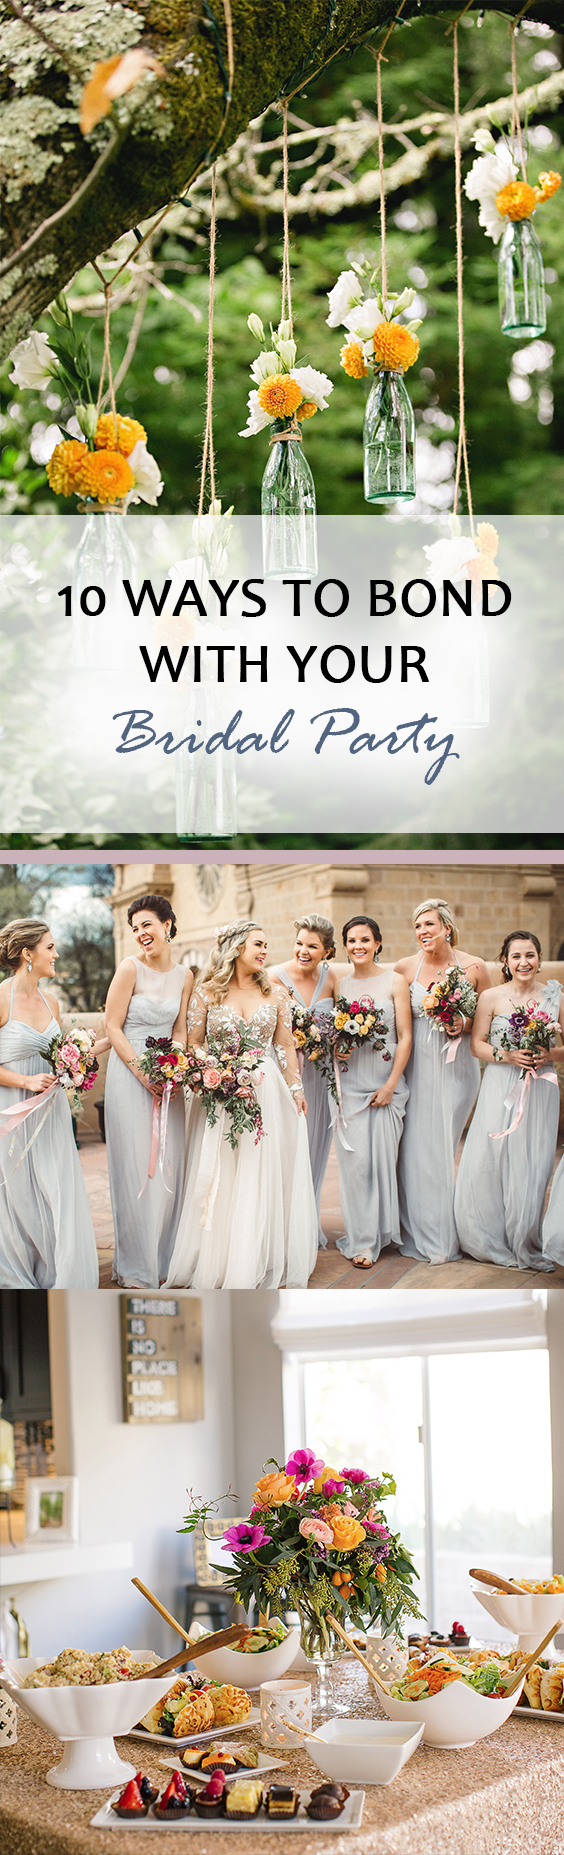 Bridal Party Activites, How to Bond With Your Bridal Party, Bridal Party Tips and Tricks, Things to Do With Your Bridal Party, Popular Pin.